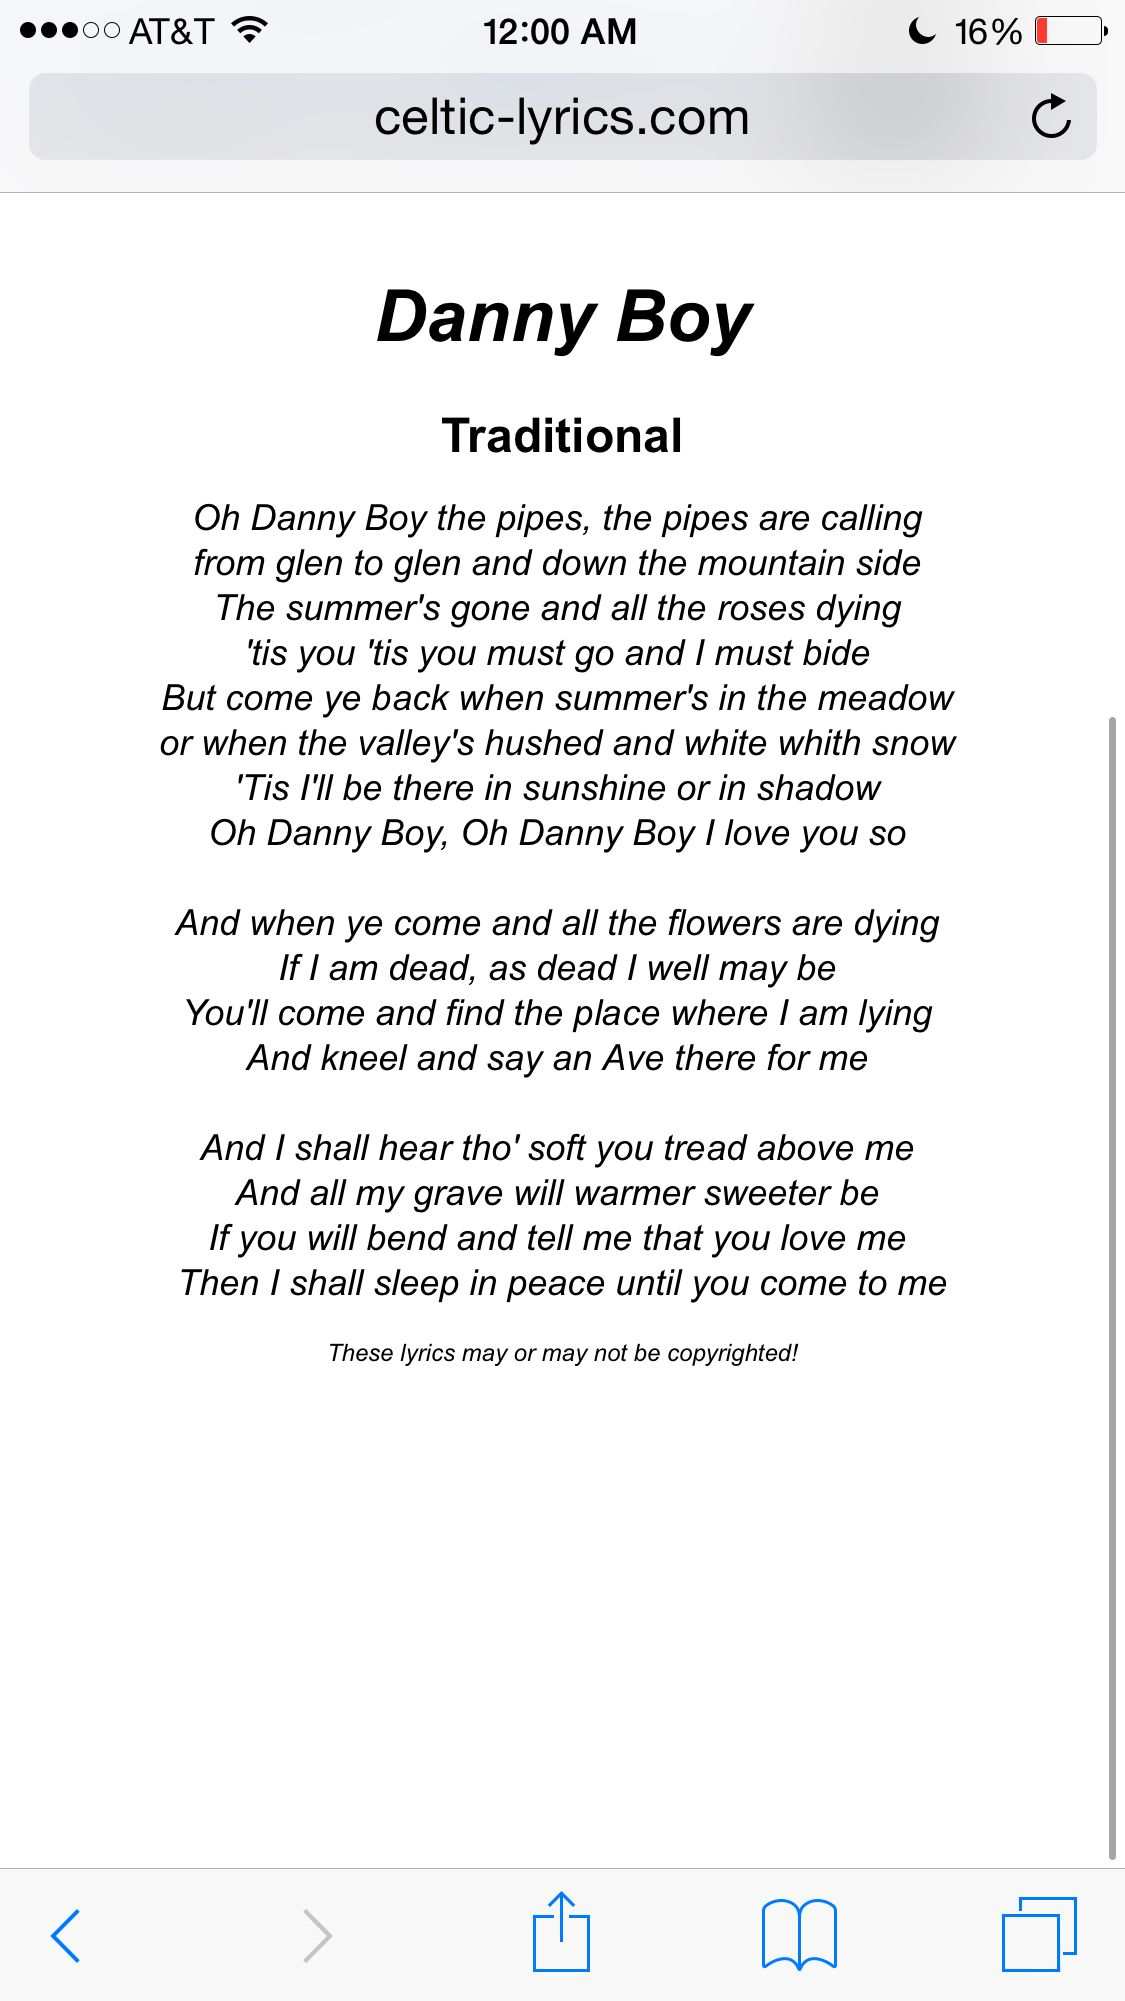 Oh danny boy lyrics mom use to sing this to me as a lullaby oh danny boy lyrics mom use to sing this to me as a lullaby stopboris Images